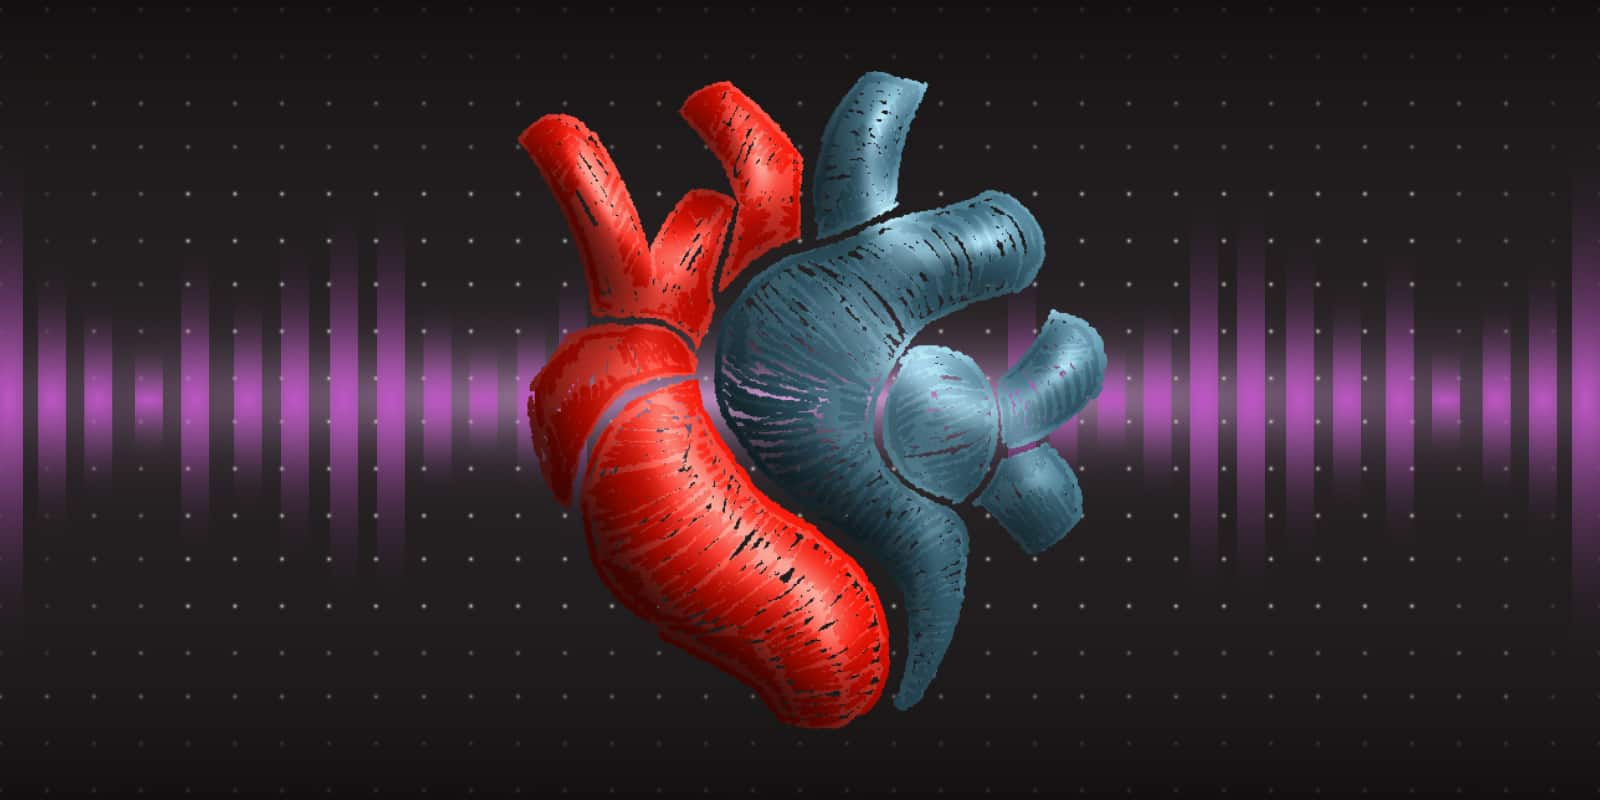 A heart that is half tissue, half metal, beats with a purple pulse